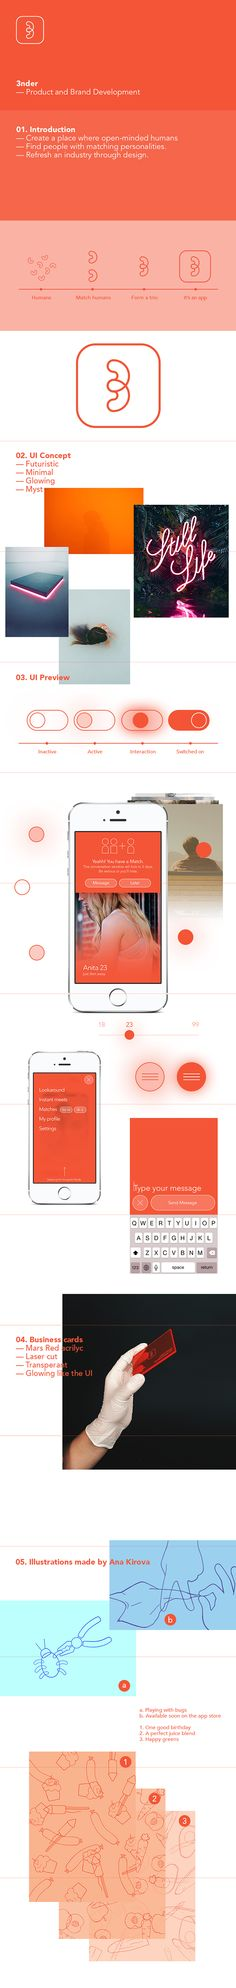 3nder — Trios made easy. by Dimo Trifonov, via Behance